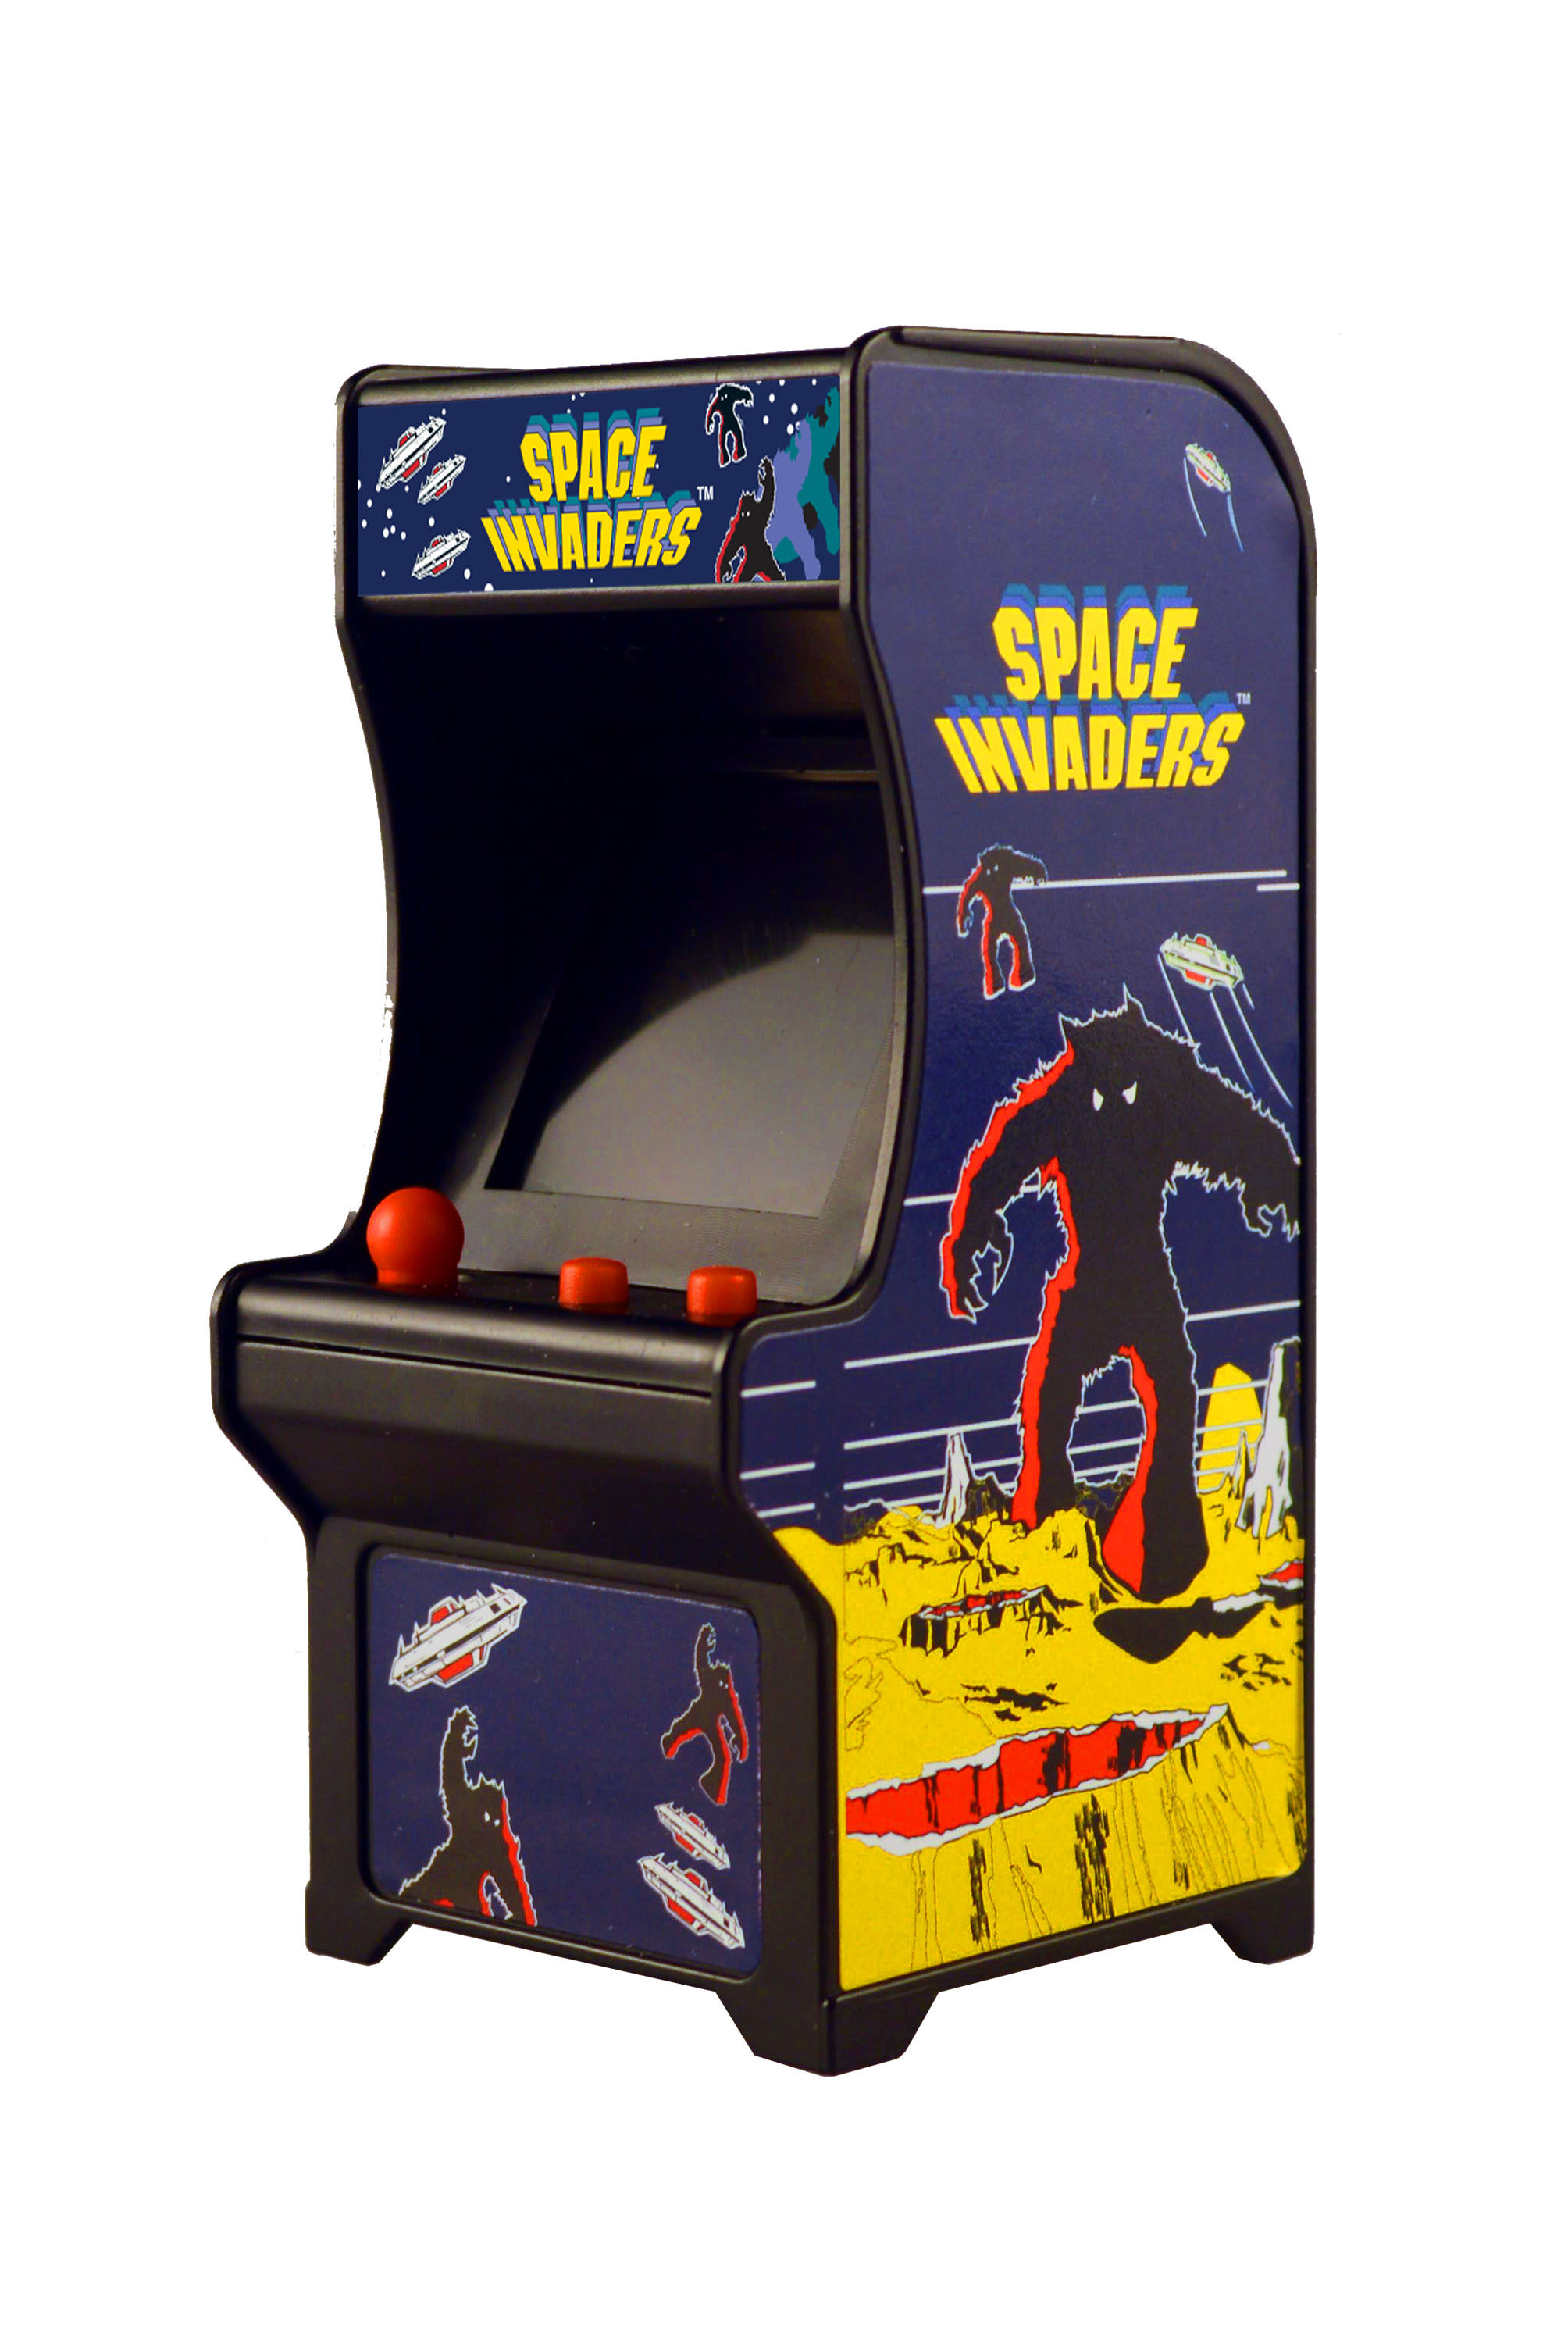 Miniature iconic arcade games are now available from Super Impulse.